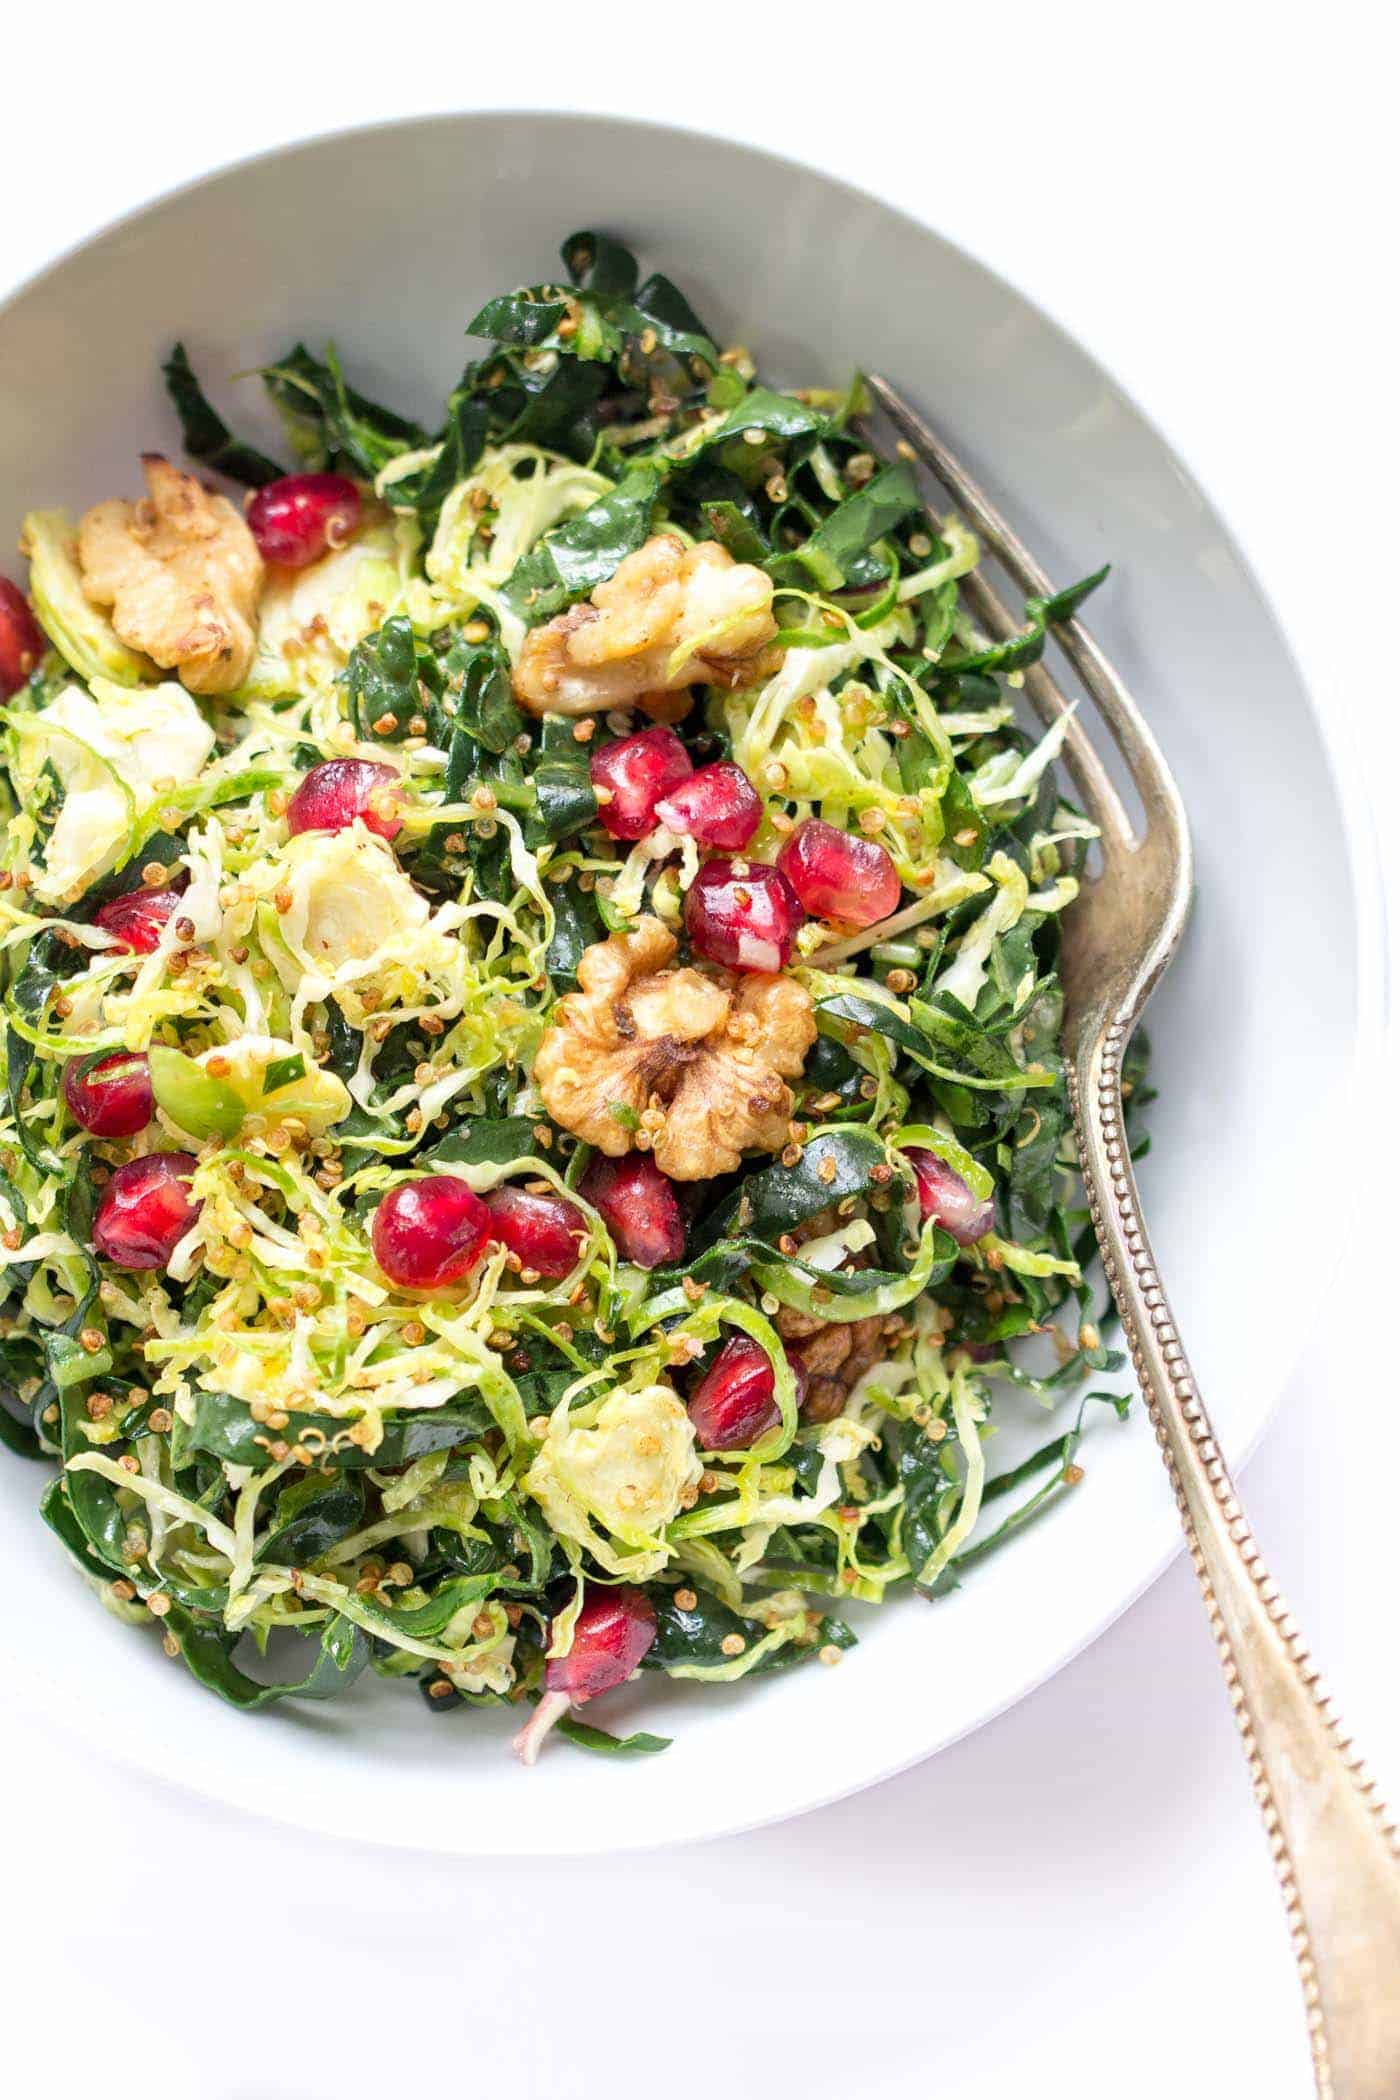 Kale + Shredded Brussels Sprout Quinoa Salad with pomegranates and toasted walnuts -- quick, easy and perfect for detoxing during the holidays!